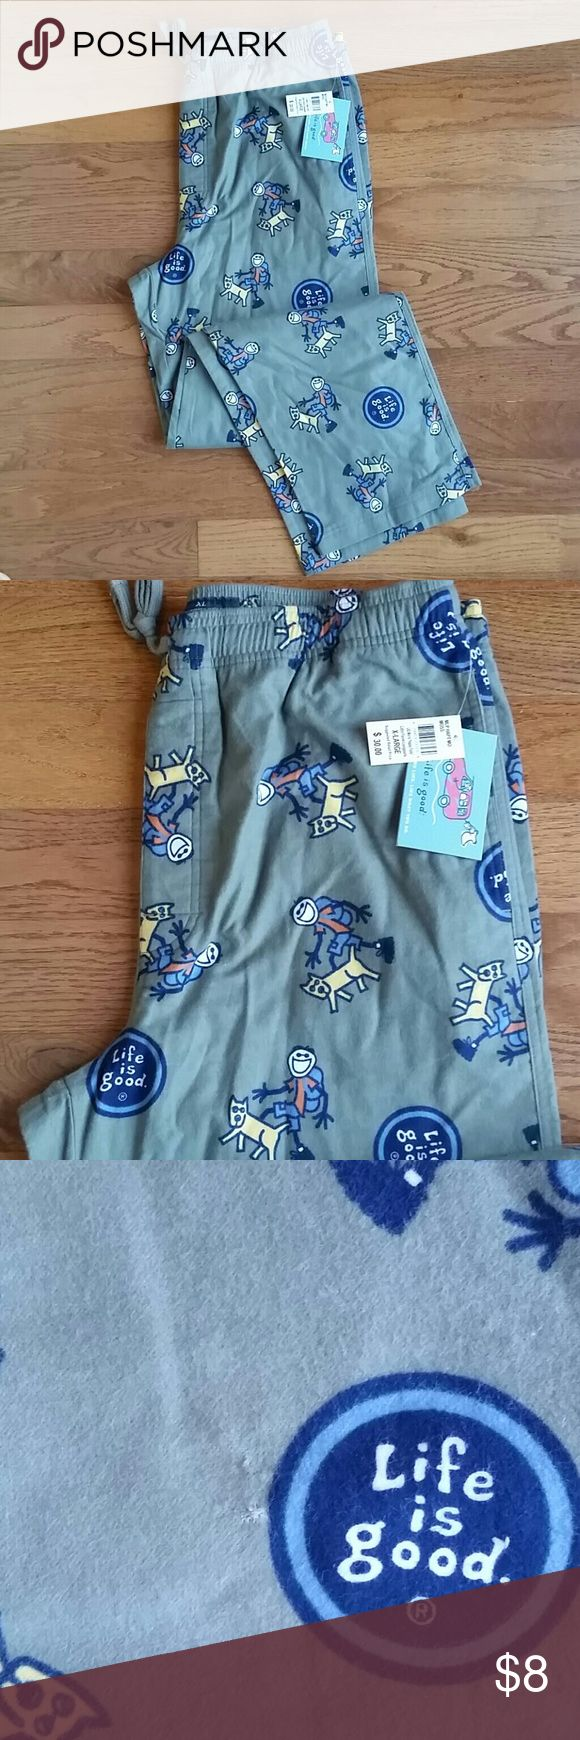 Life is good men's sleep pant These pants are super soft 100% cotton flannel. Feature hiking jake and rocket dog. Long and great for lounging. They are new with tags but have a small spot show. In the last 2 pictures. I almost didn't even notice it. Life is Good Pants Sweatpants & Joggers